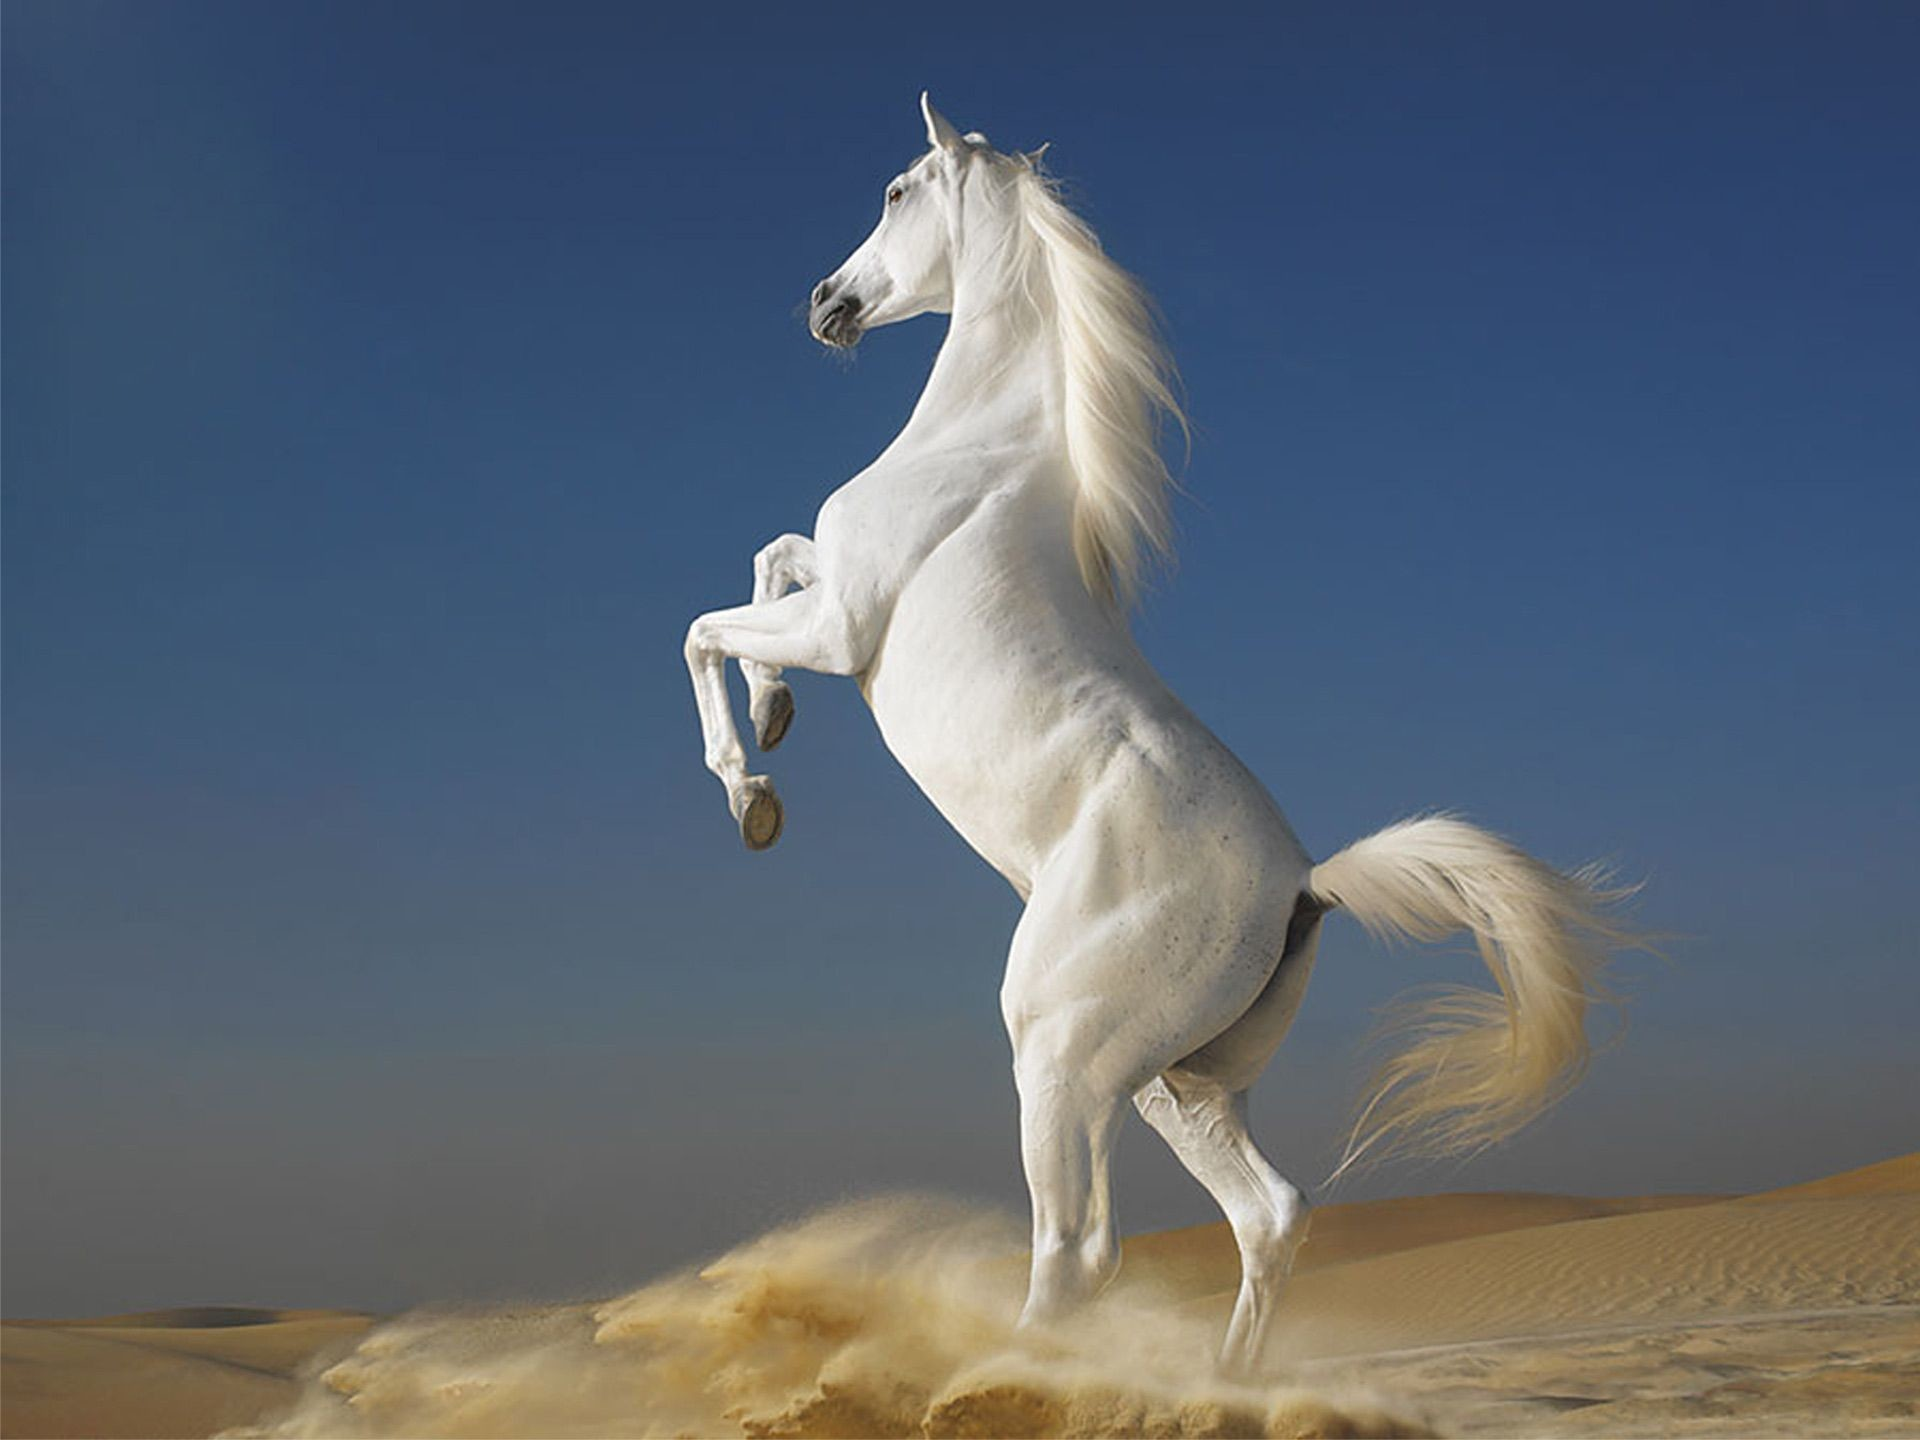 1920x1440 Horse Wallpapers Pack Download FLGX DB 1920×1440 Images Of Horse Wallpapers  (40 Wallpapers